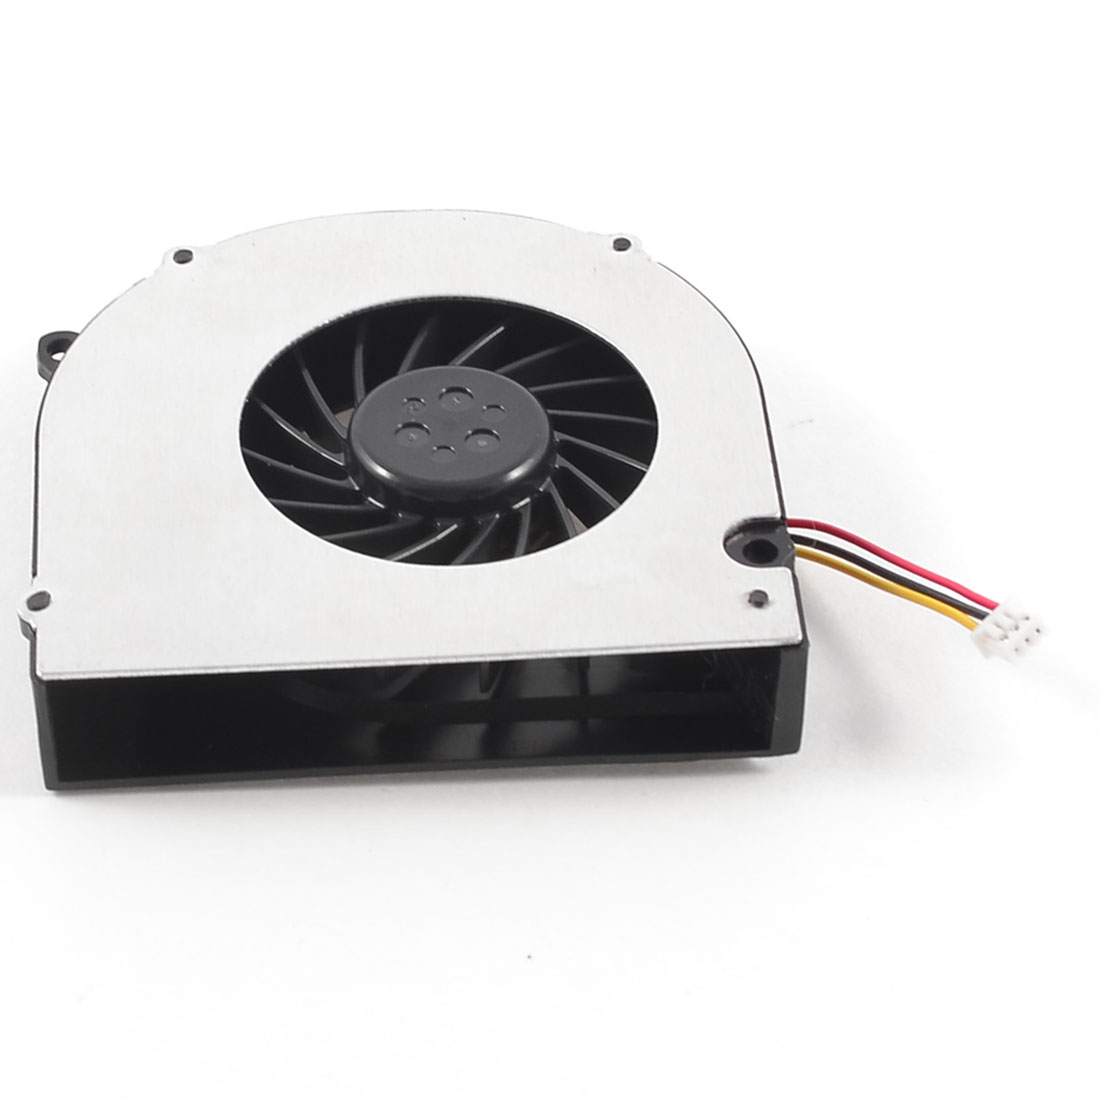 Laptop CPU Cooling Fan for HP 6530S 6531S 6535S 6735S 6720 541 NX6320